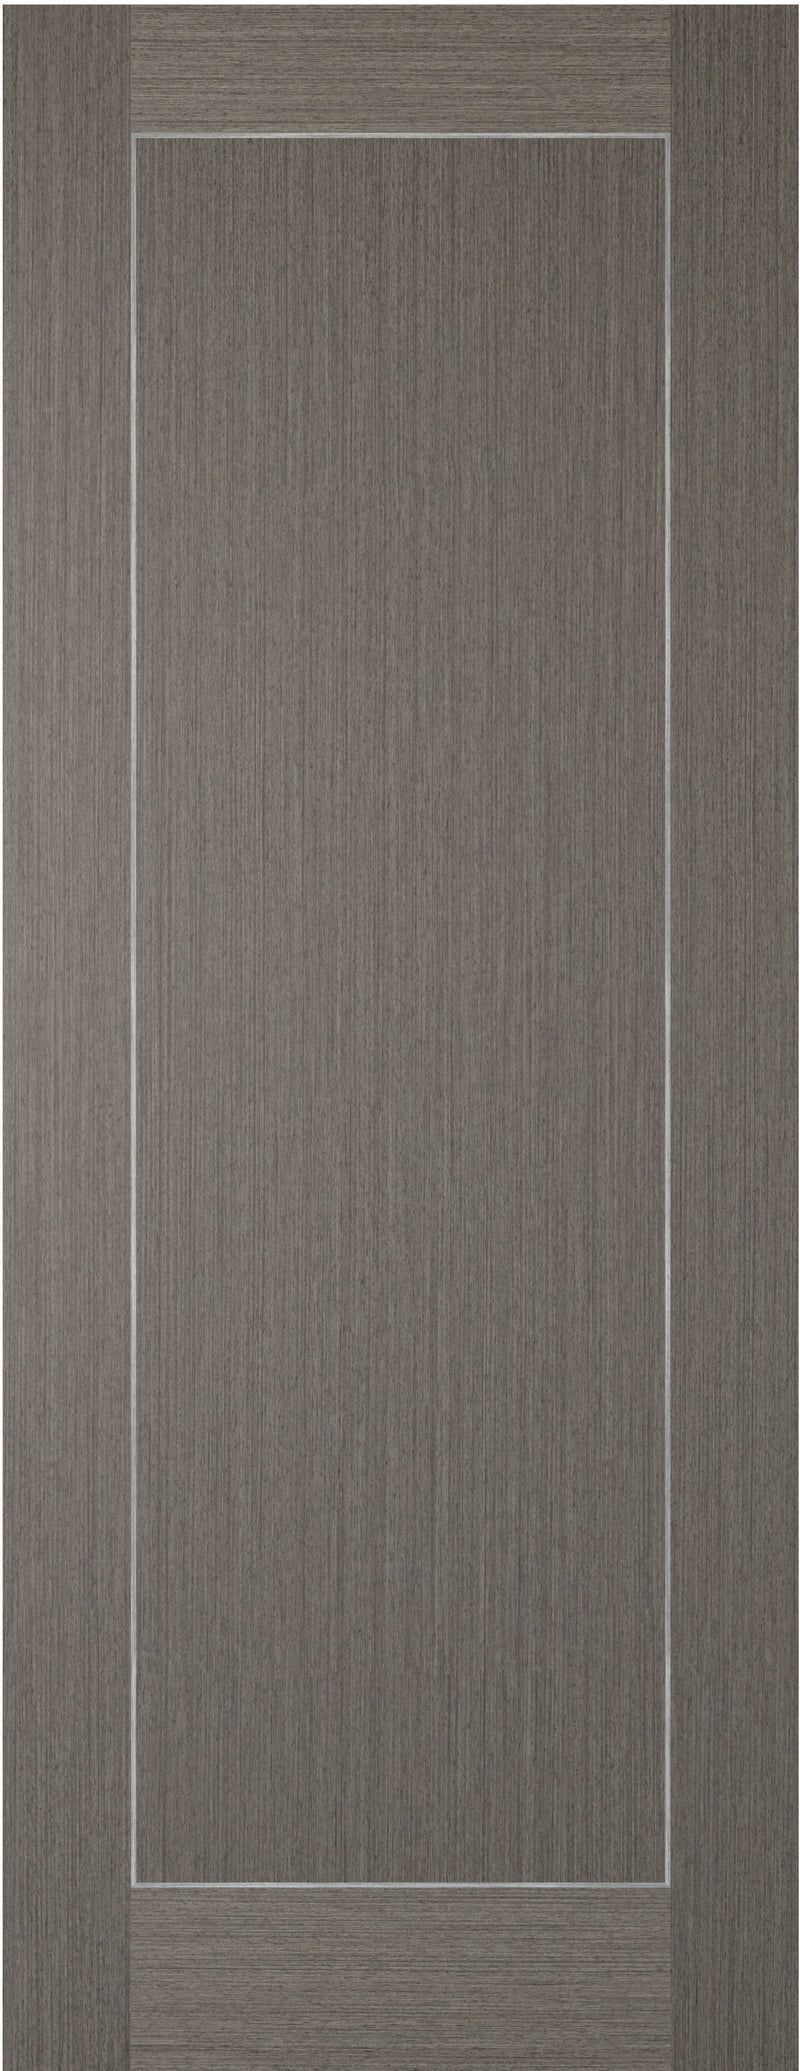 1 Panel inlay chocolate grey prefinished door.